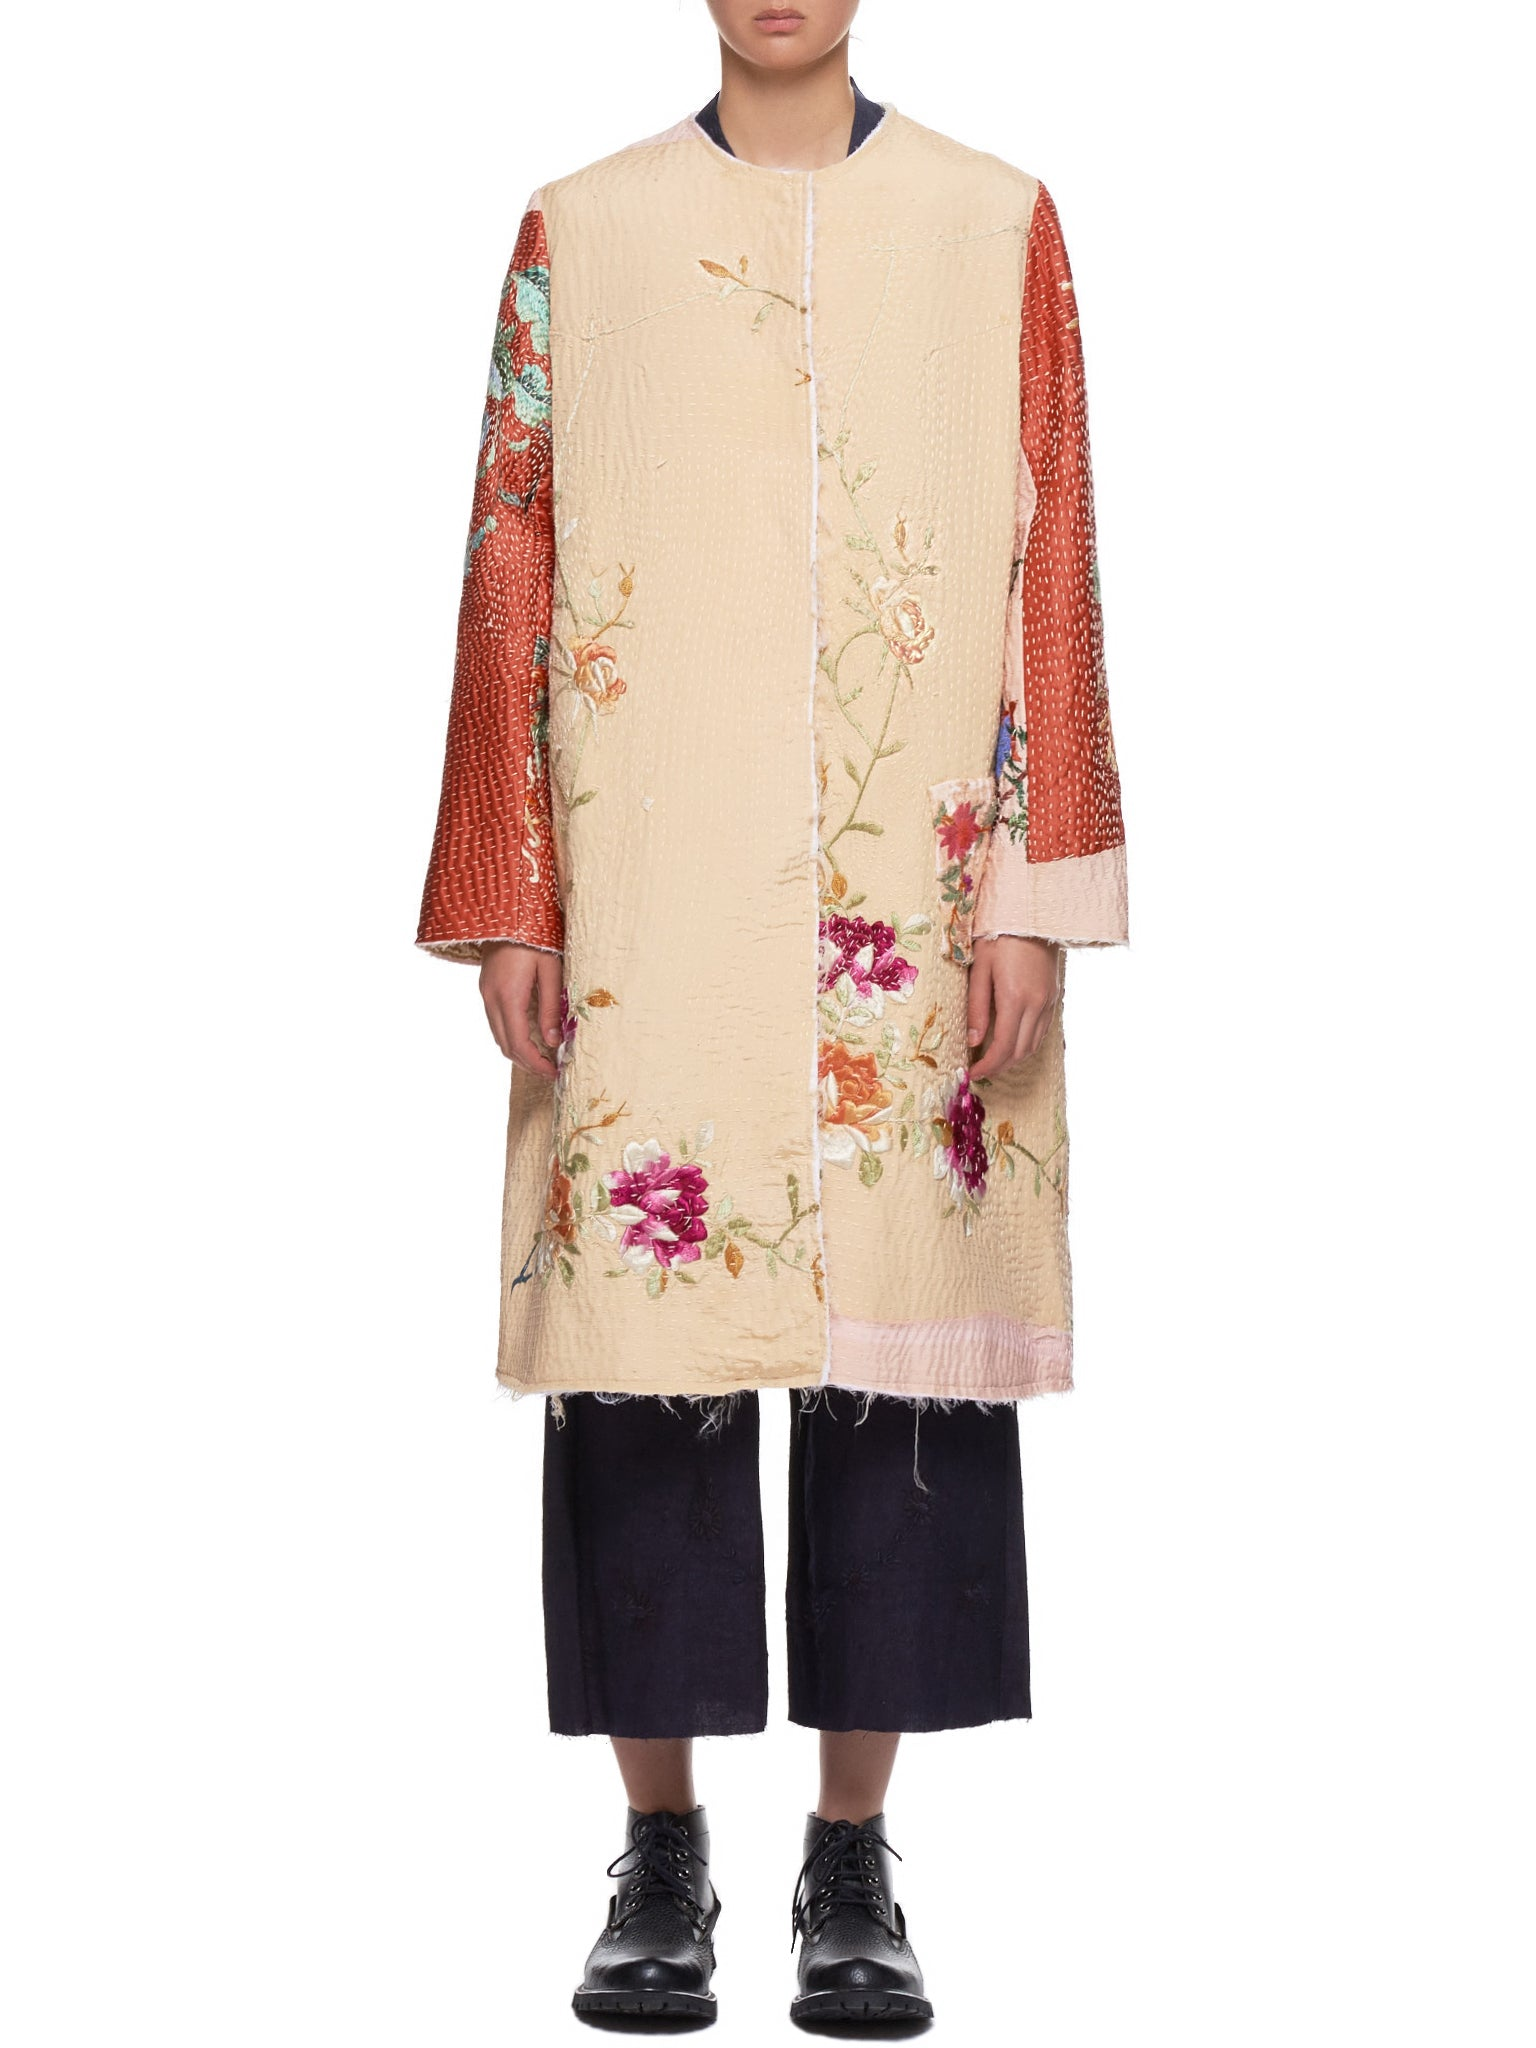 Floral Panel Tanita Coat (170011W-TANITA-LIGHT-MULTI)